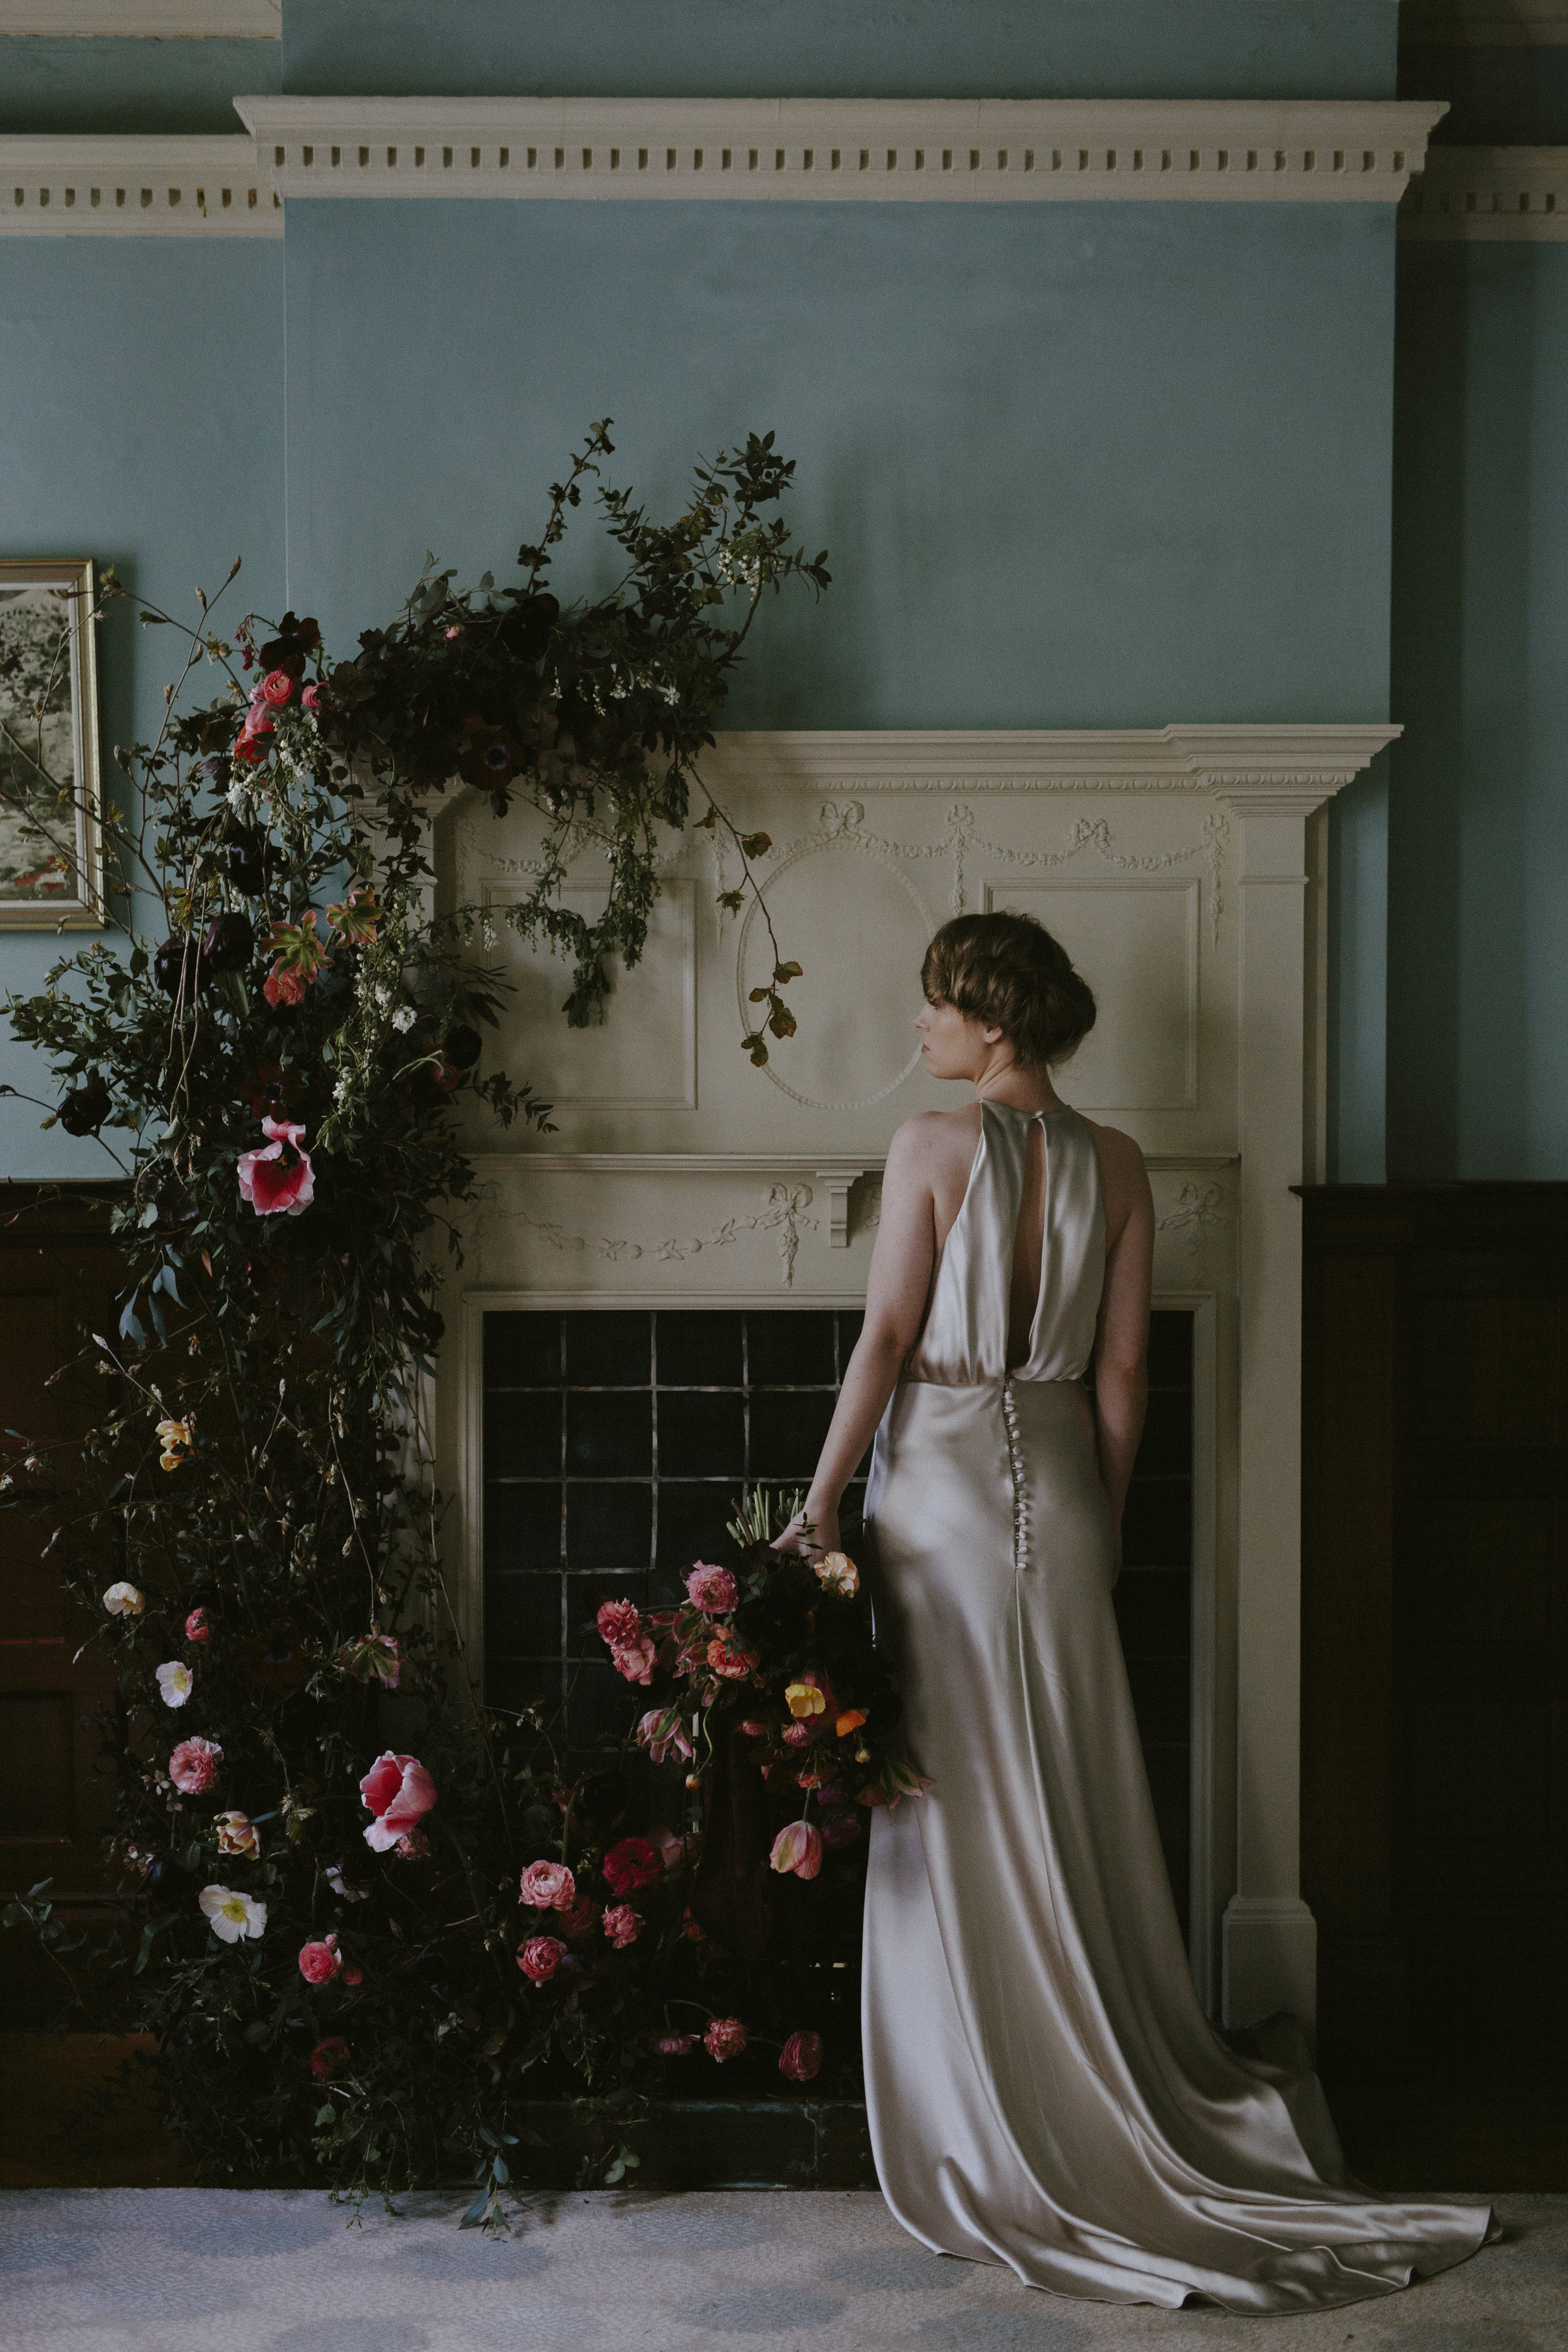 Agnes-and-bee-Kate-Beaumont-wedding-dresses-Ruth-Atkinson-25.jpg